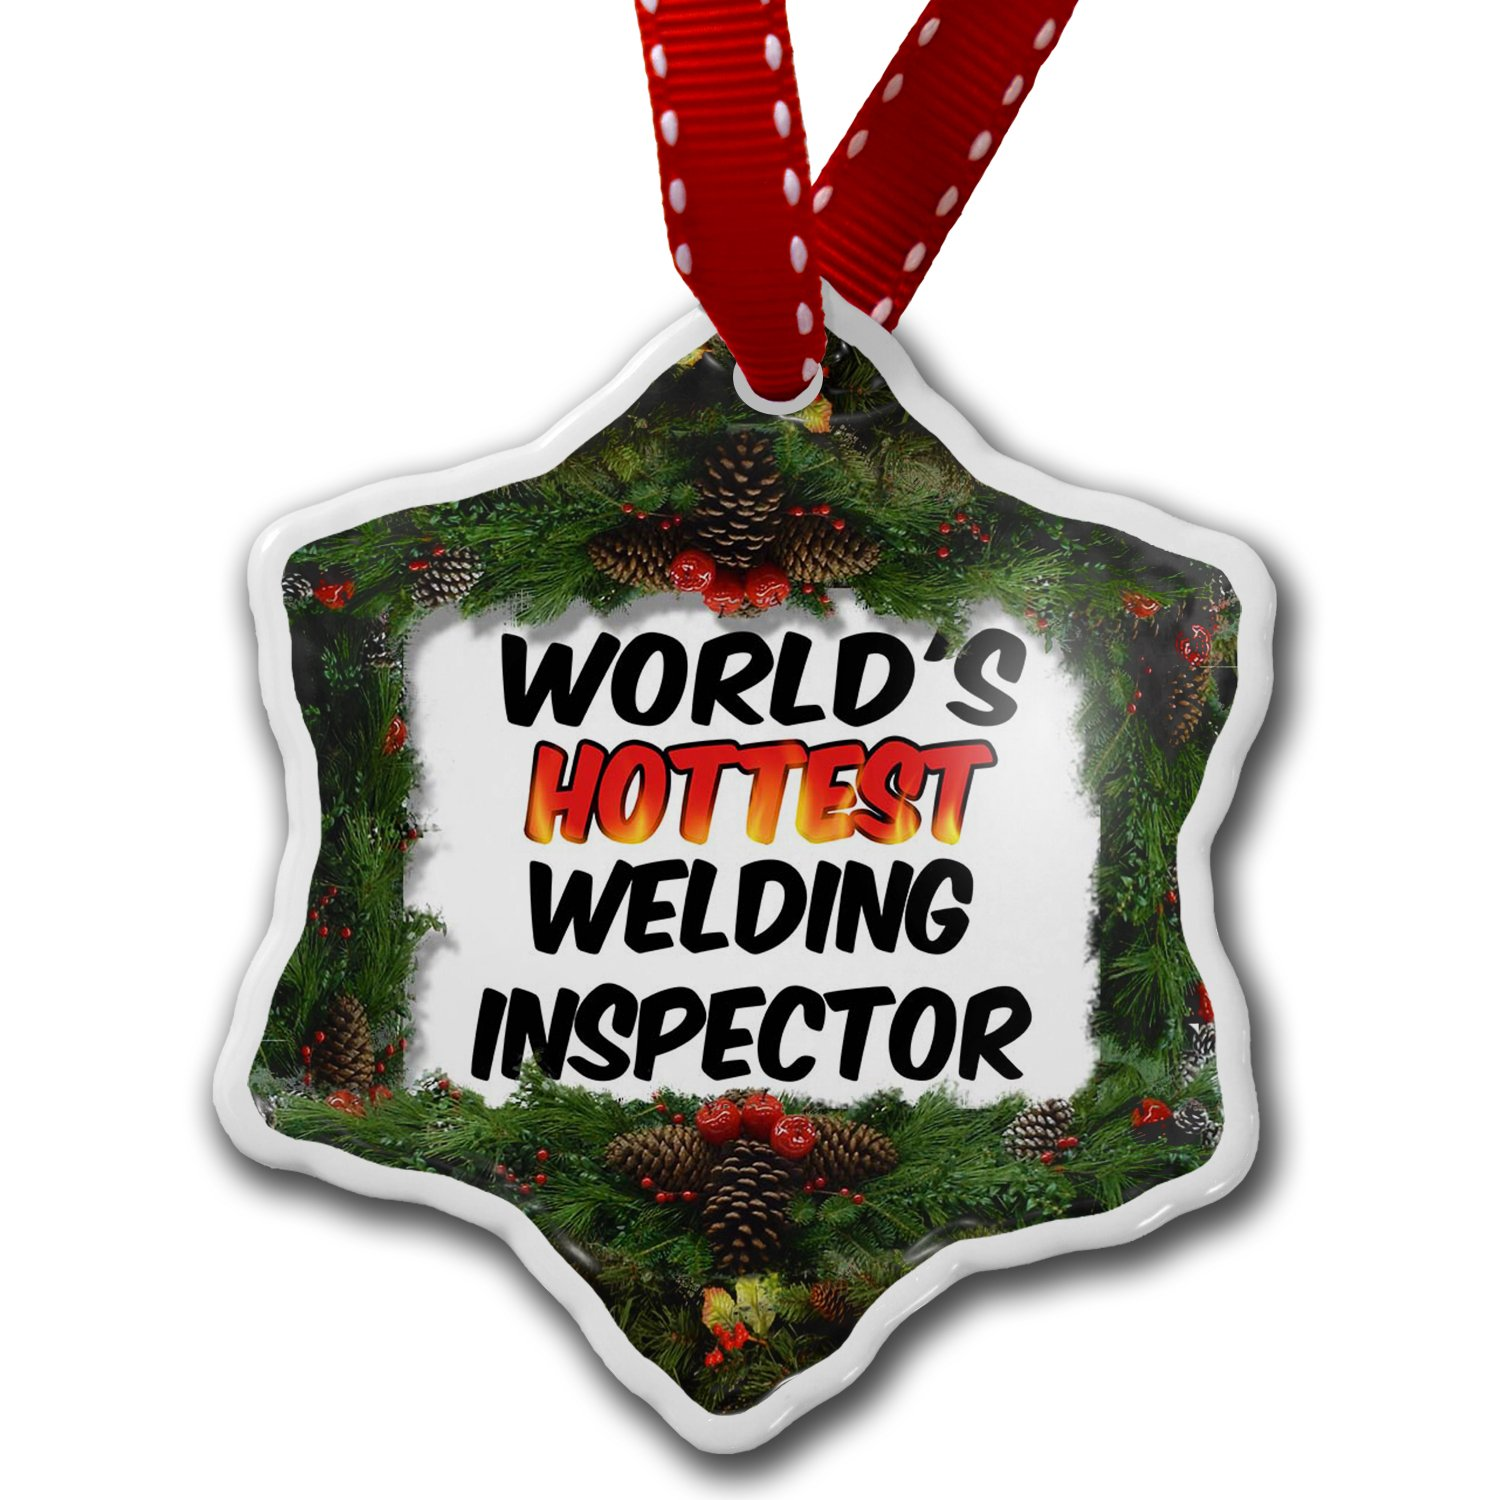 Amazon: Christmas Ornament Worlds Hottest Welding Inspector   Neonblond: Home & Kitchen